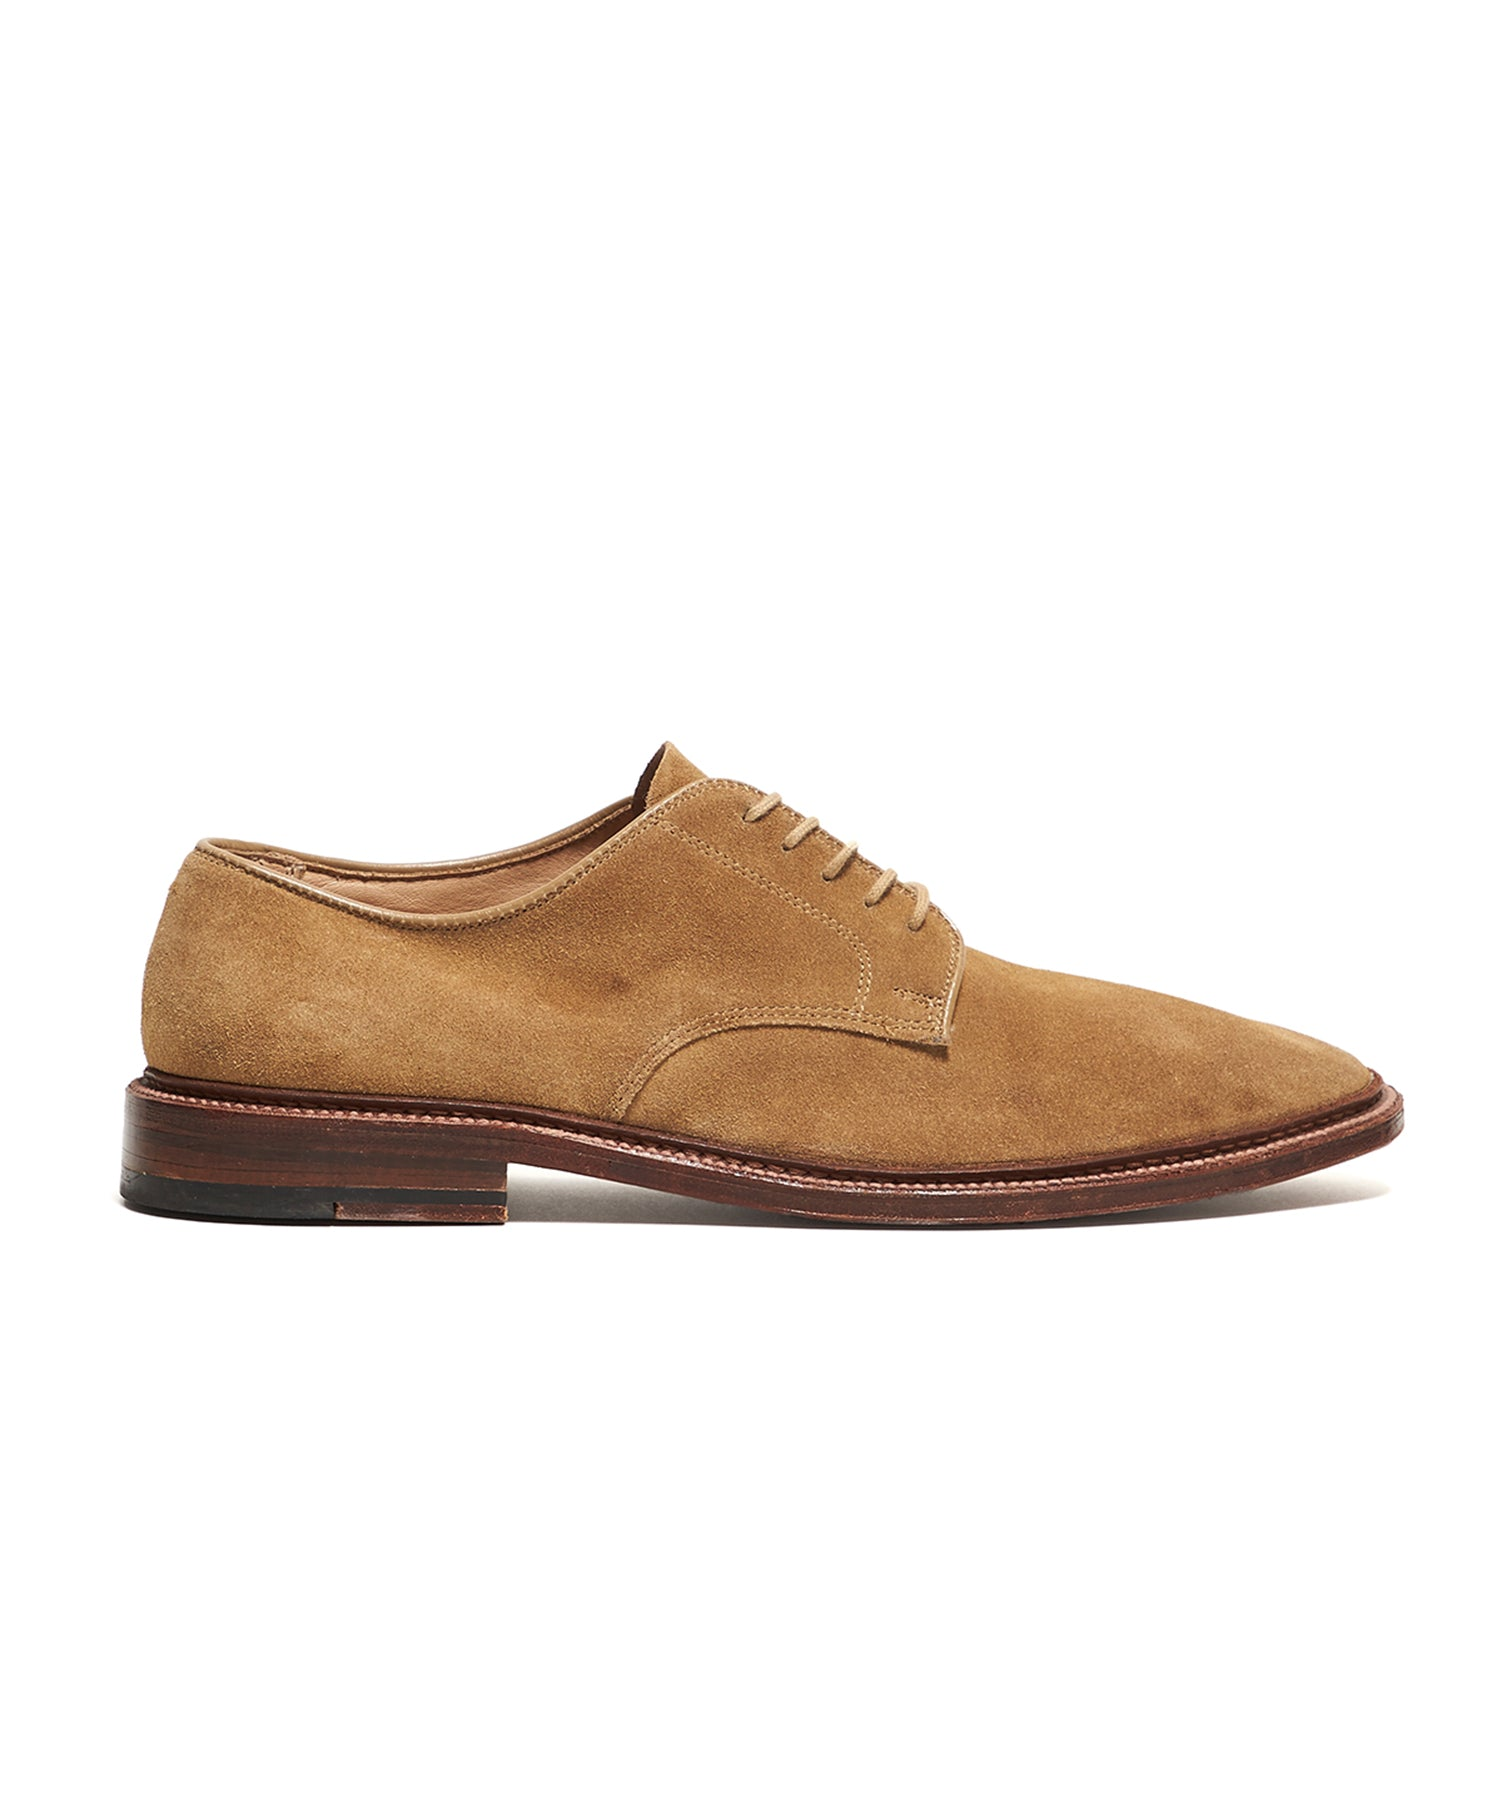 Alden Unlined Suede Plain Toe Blucher in Tan